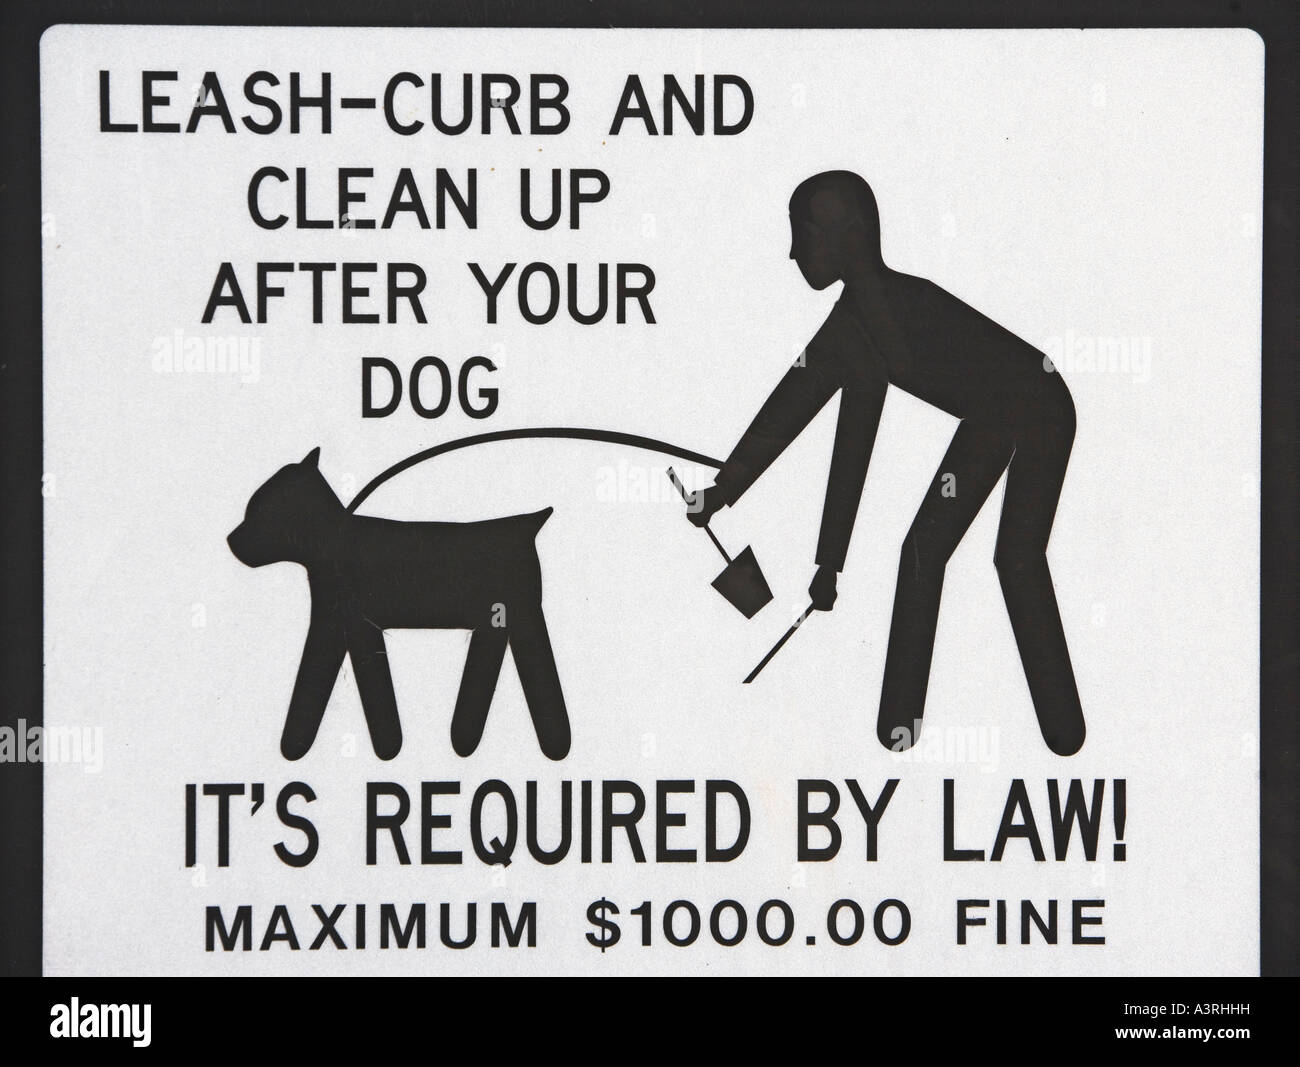 DOGS, CLEANUP, LAW, REQUIRED BY LAW, REQUIRED, MAXIMUM, FINE, MONEY, ICON, PERSON, DOG, SIGN, DIRECTION - Stock Image